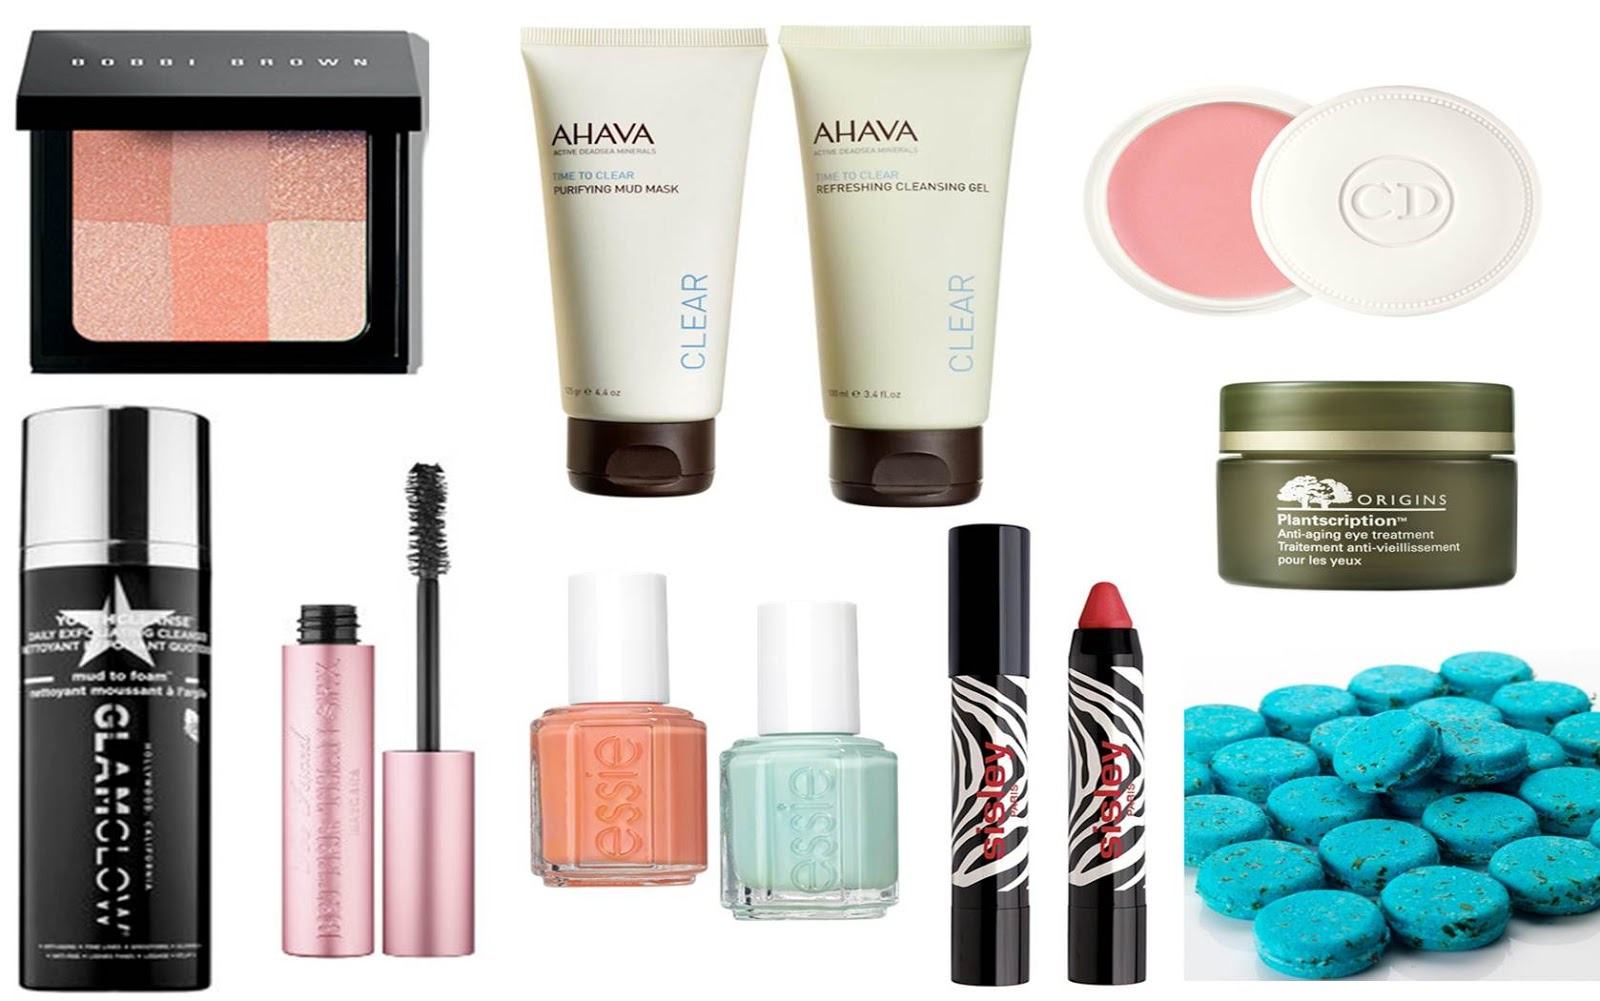 Beauty-Wishlist Frühling 2015 Bobbi Brown, AHAVA, Dior, Origins, GlamGlow, TooFaced, Essie, LUSH